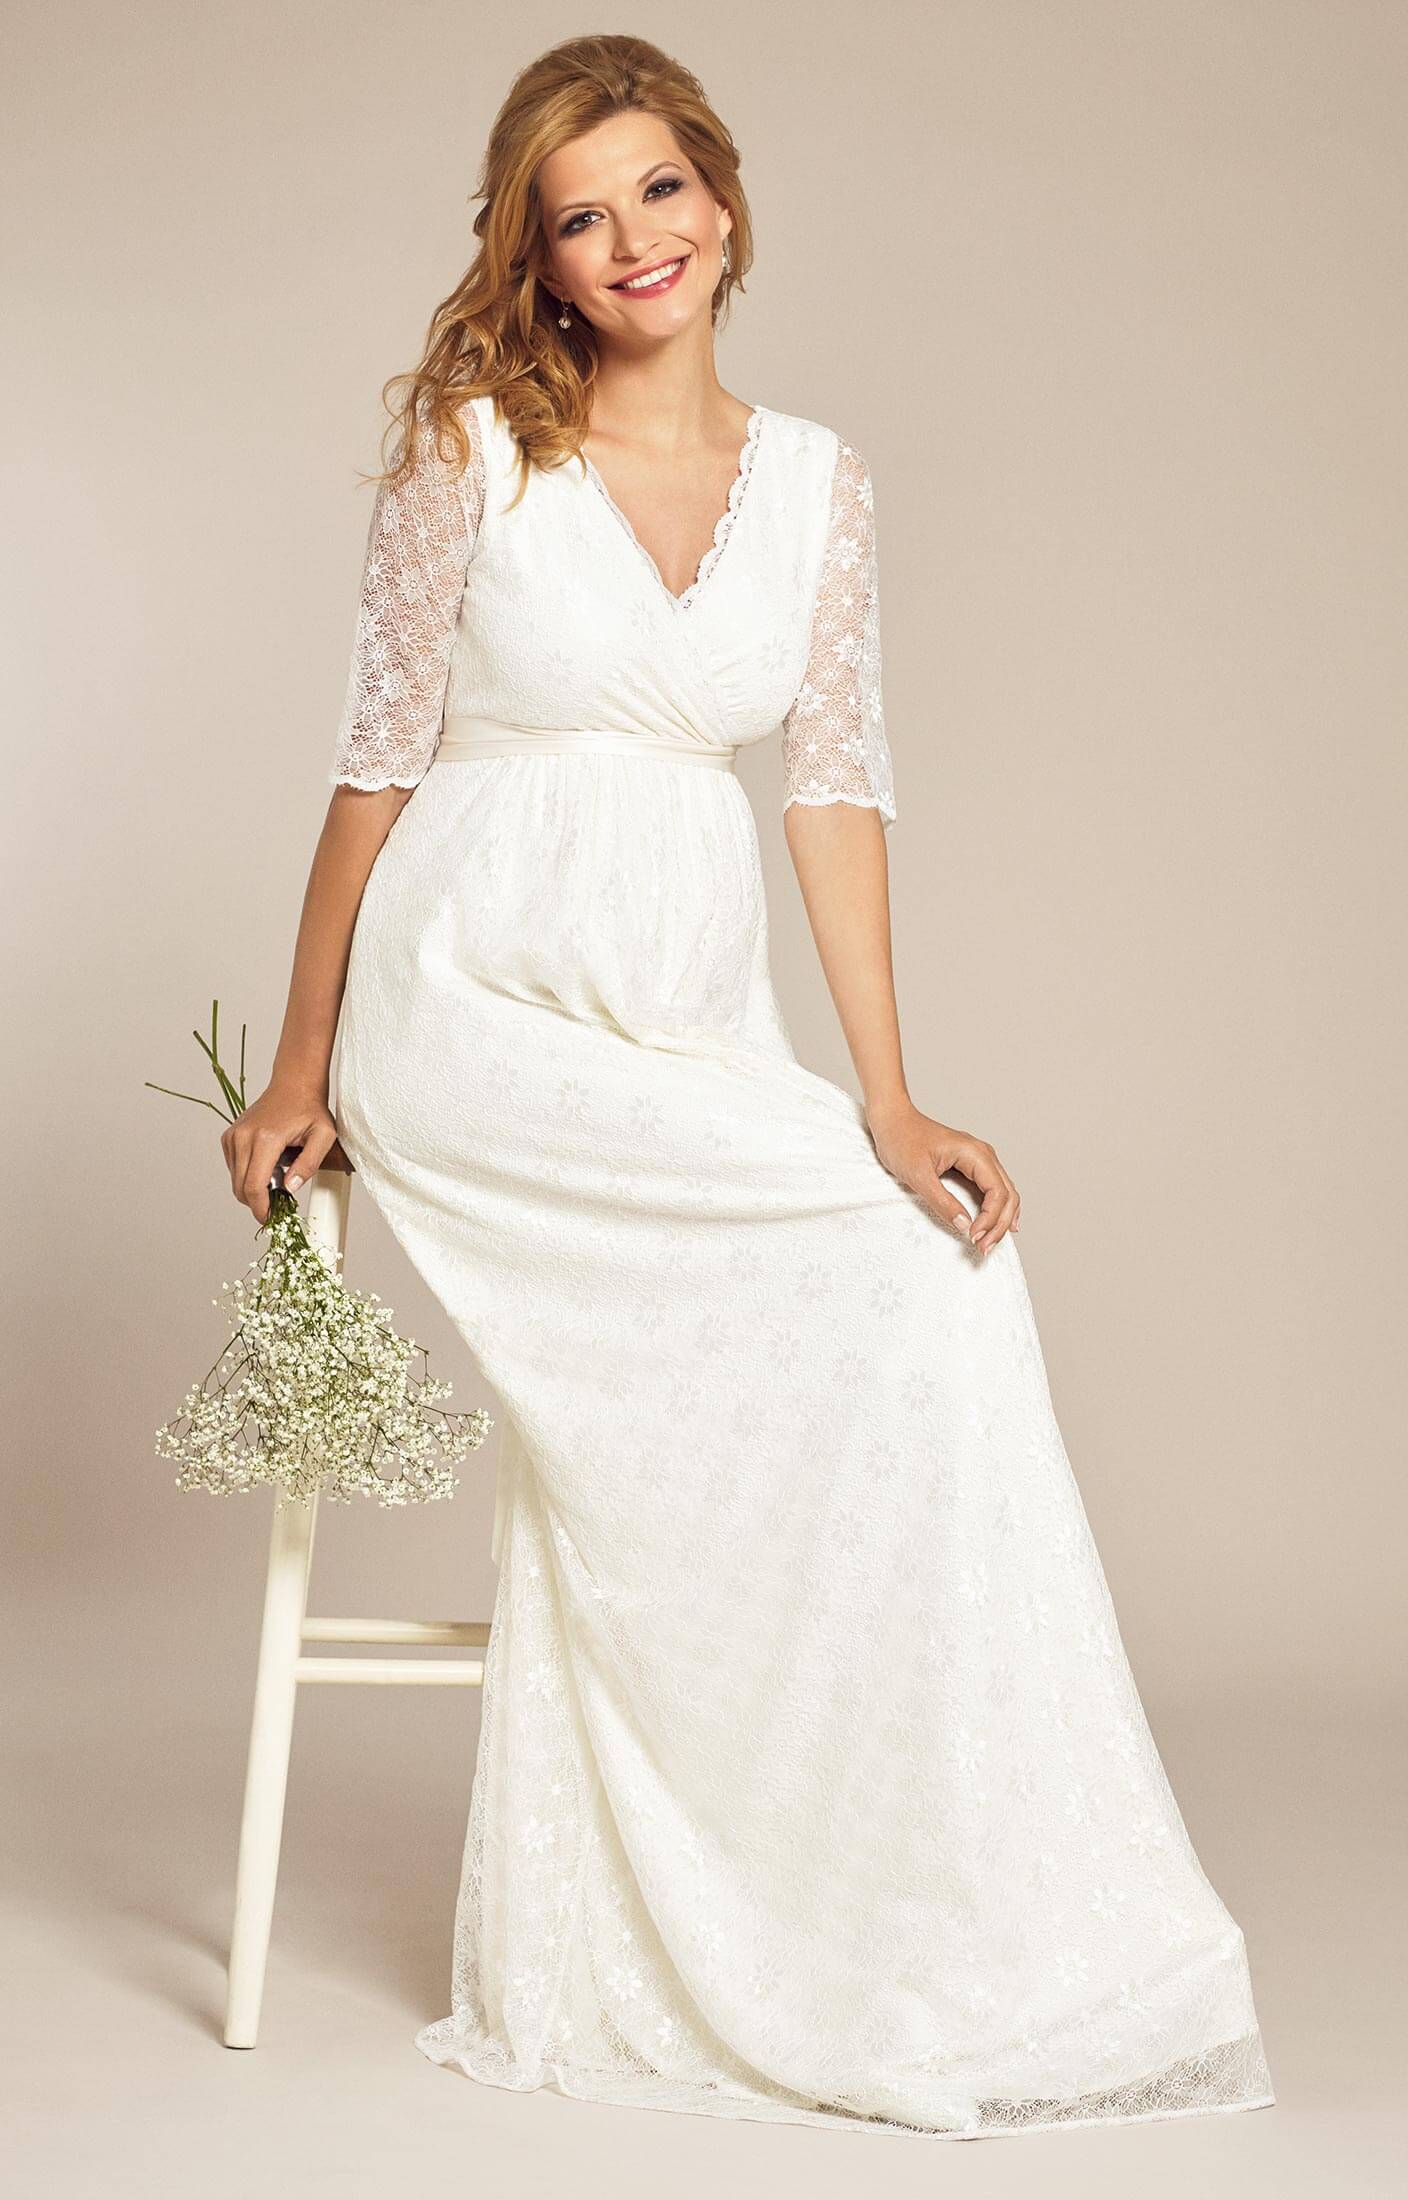 d6d7a0eaa4517 Enya Maternity Wedding Gown Long Ivory - Maternity Wedding Dresses, Evening  Wear and Party Clothes by Tiffany Rose NO